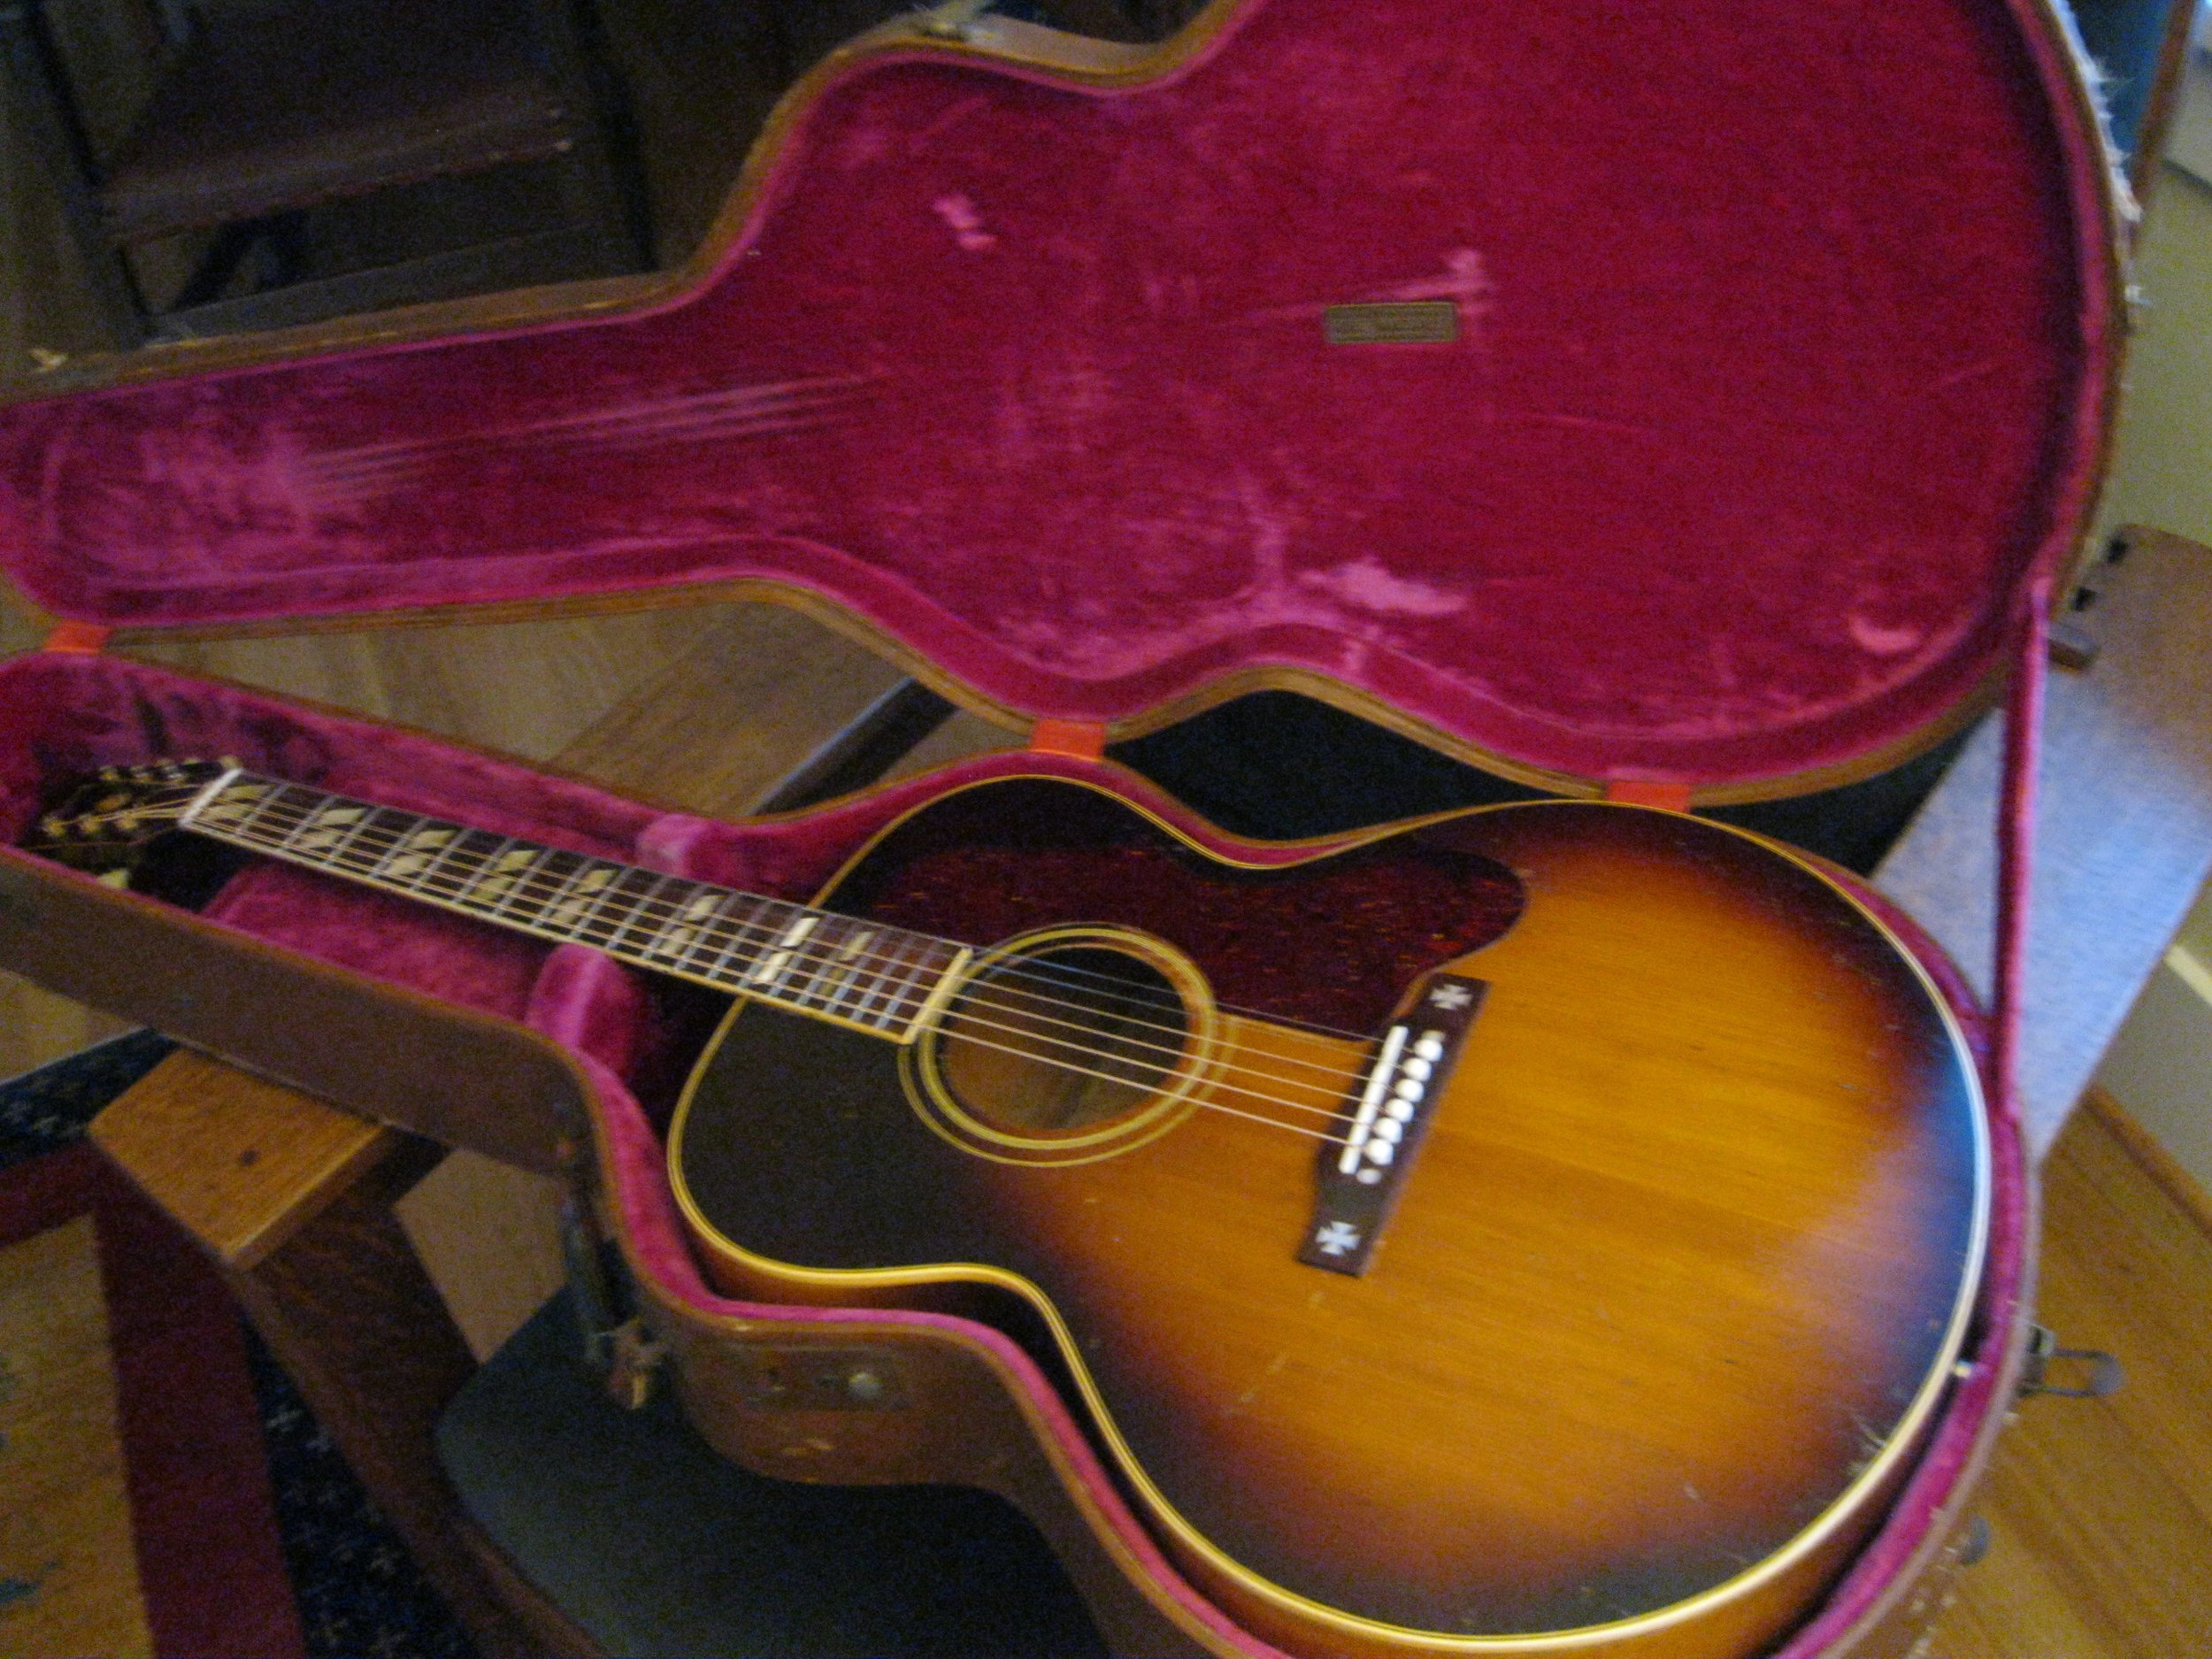 James Clem's 1952 Gibson J-185 guitar with Lifton case .